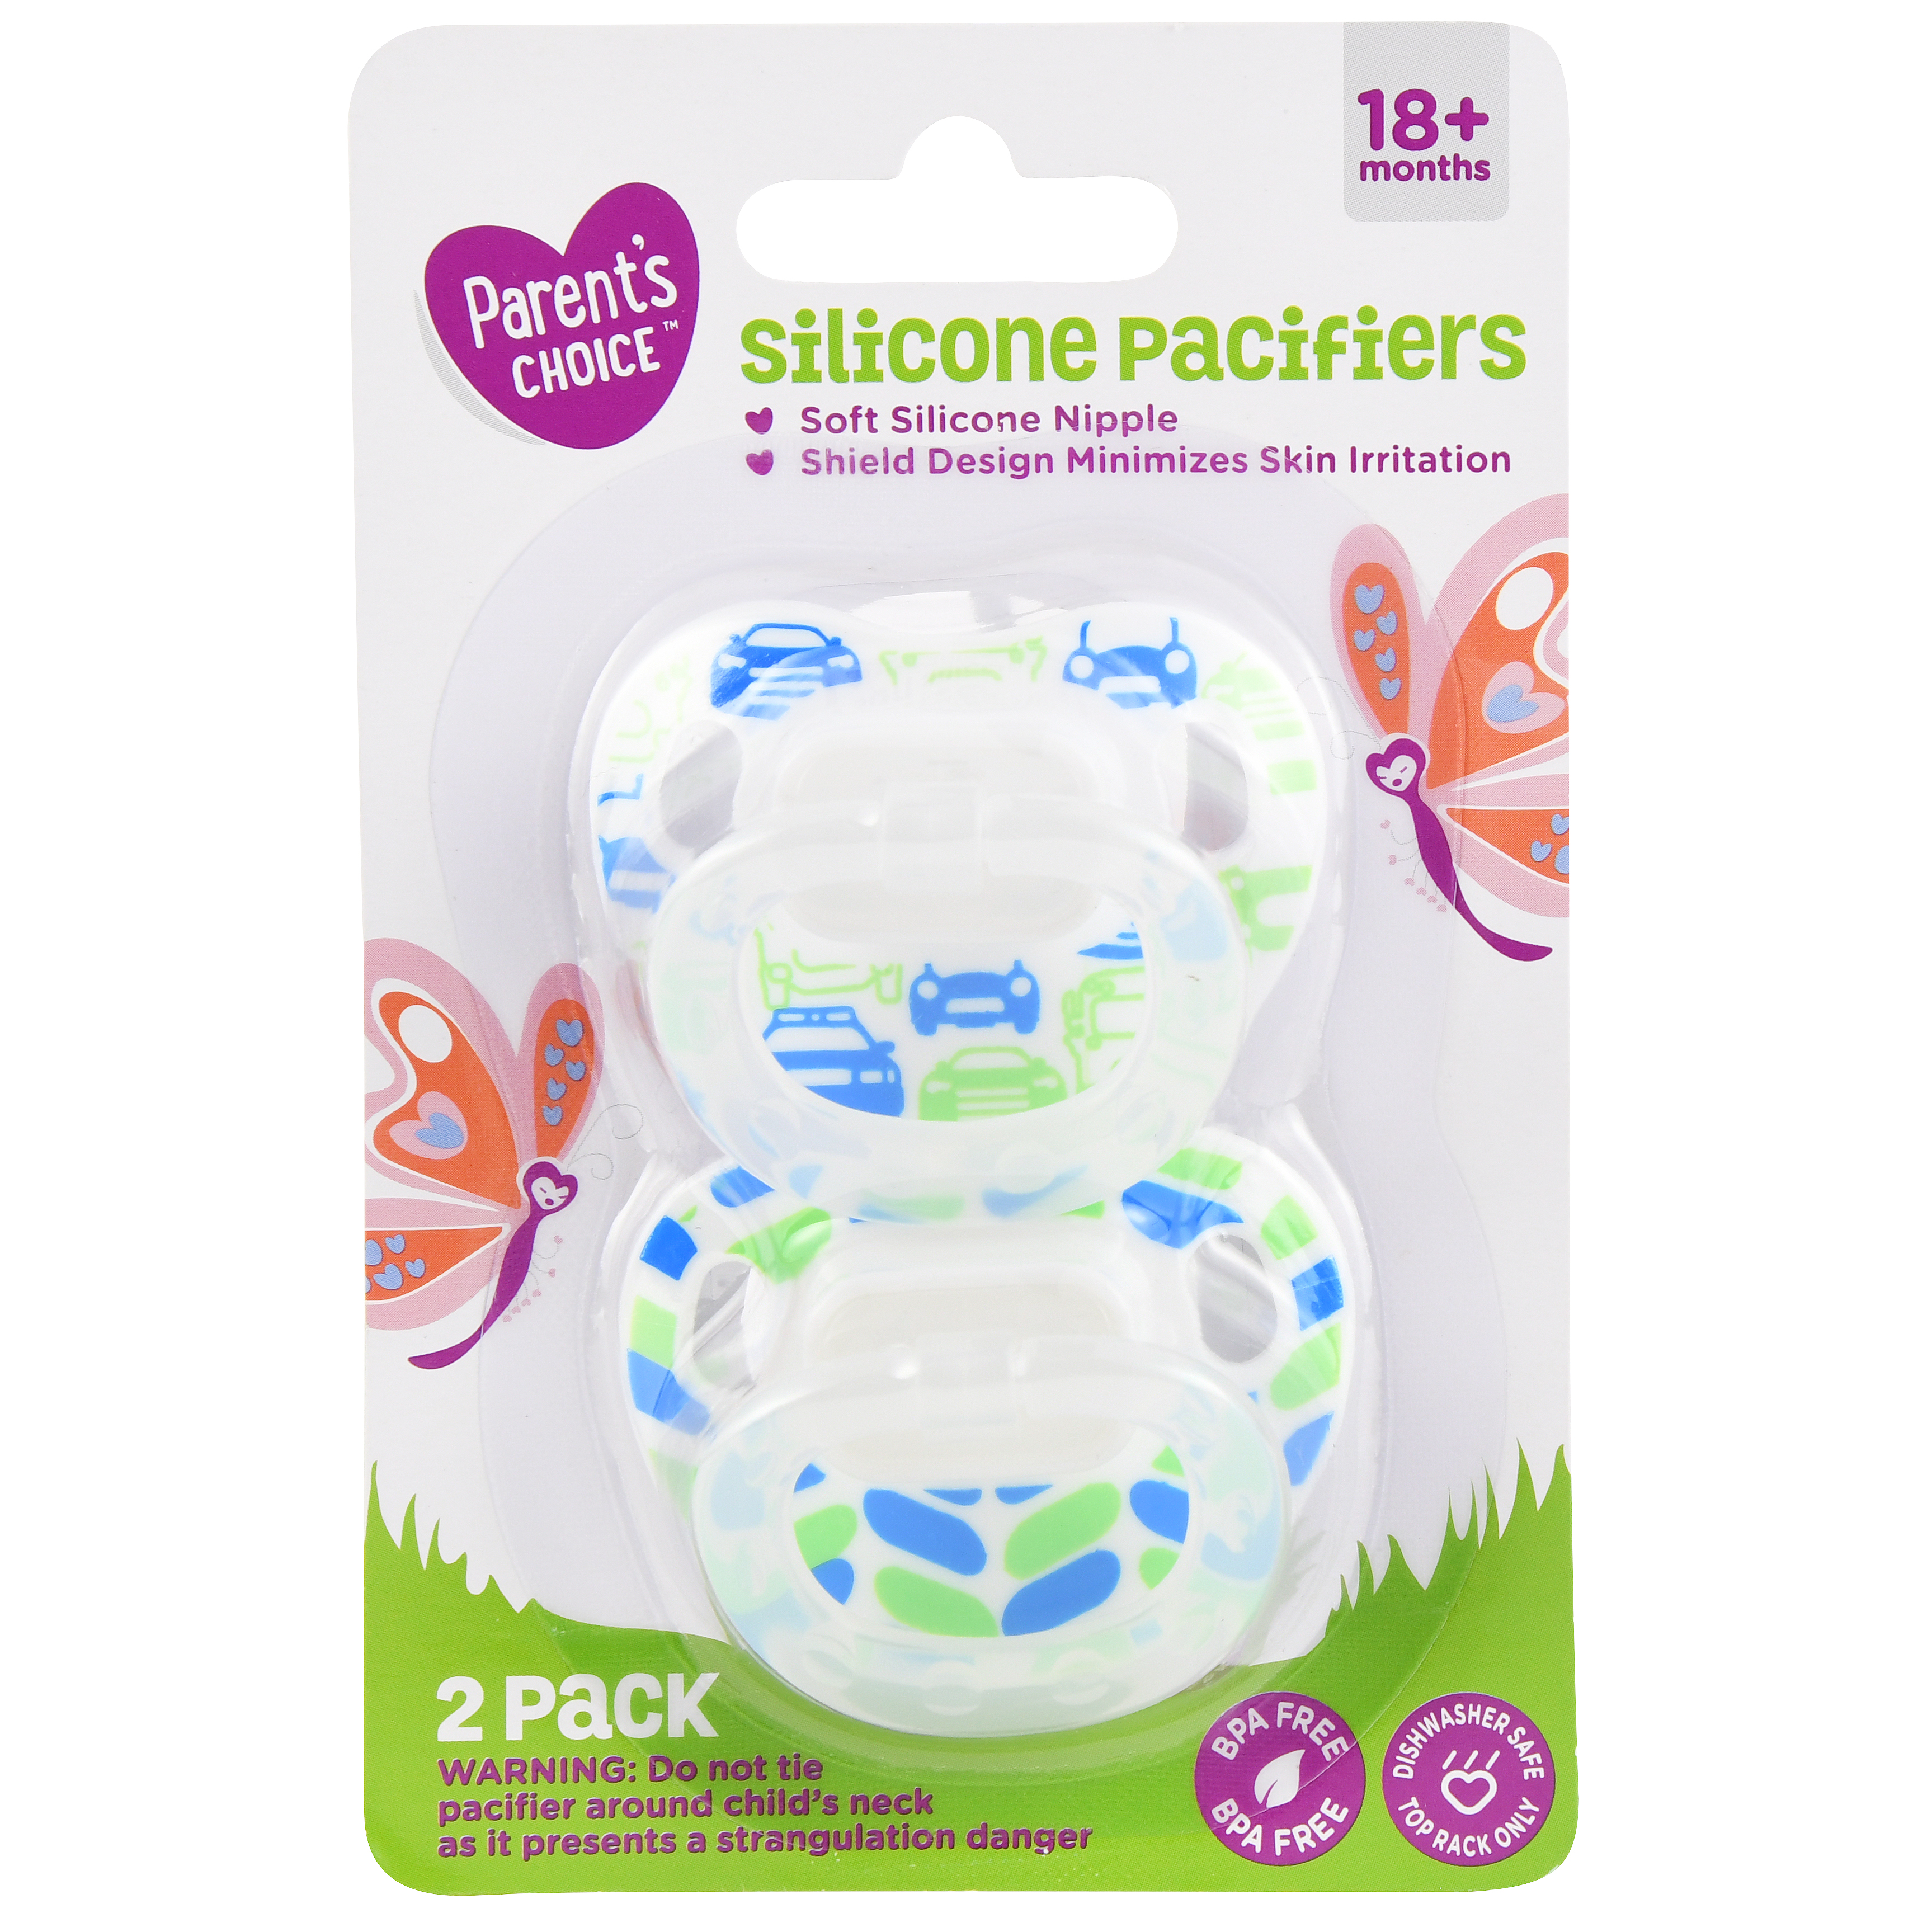 Parent's Choice Silicone Pacifiers, 2 count